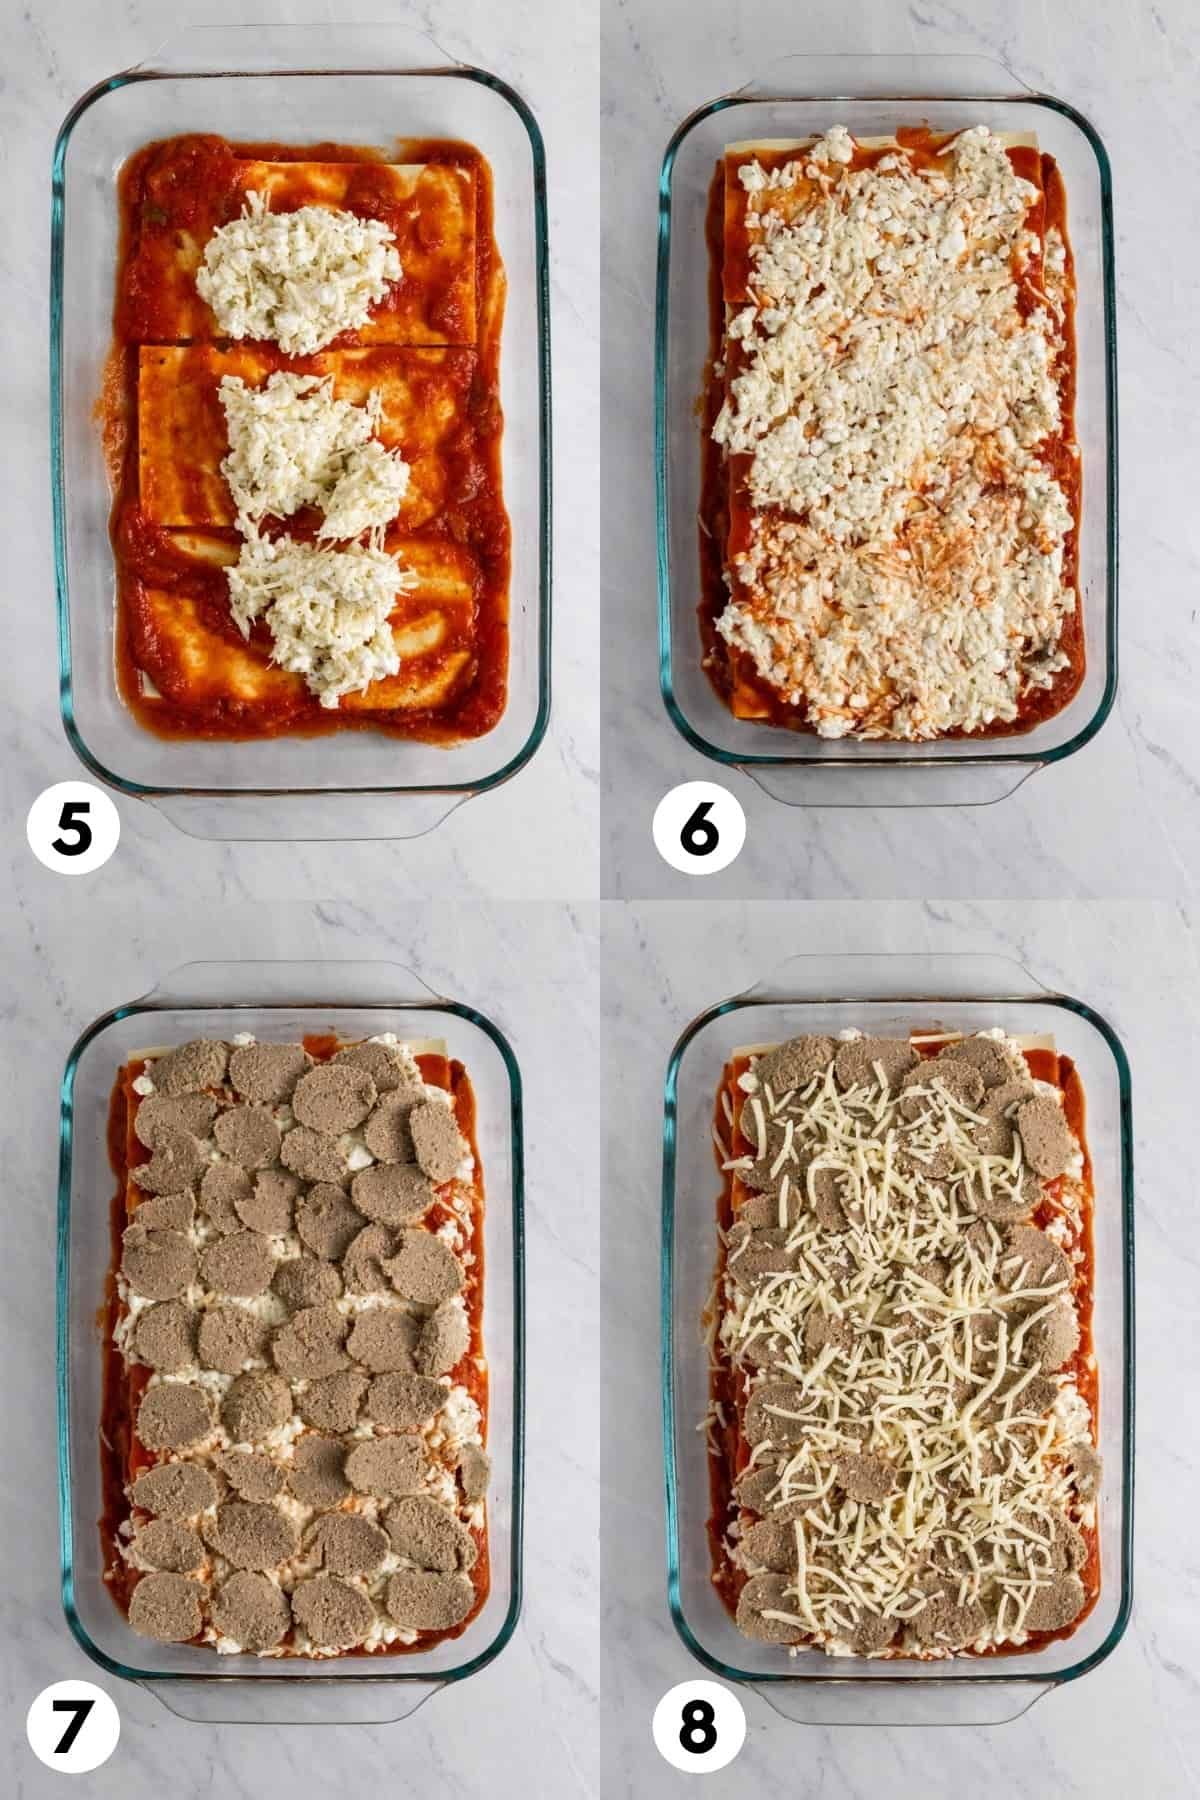 Sauce, meat and cheese layered in pan.